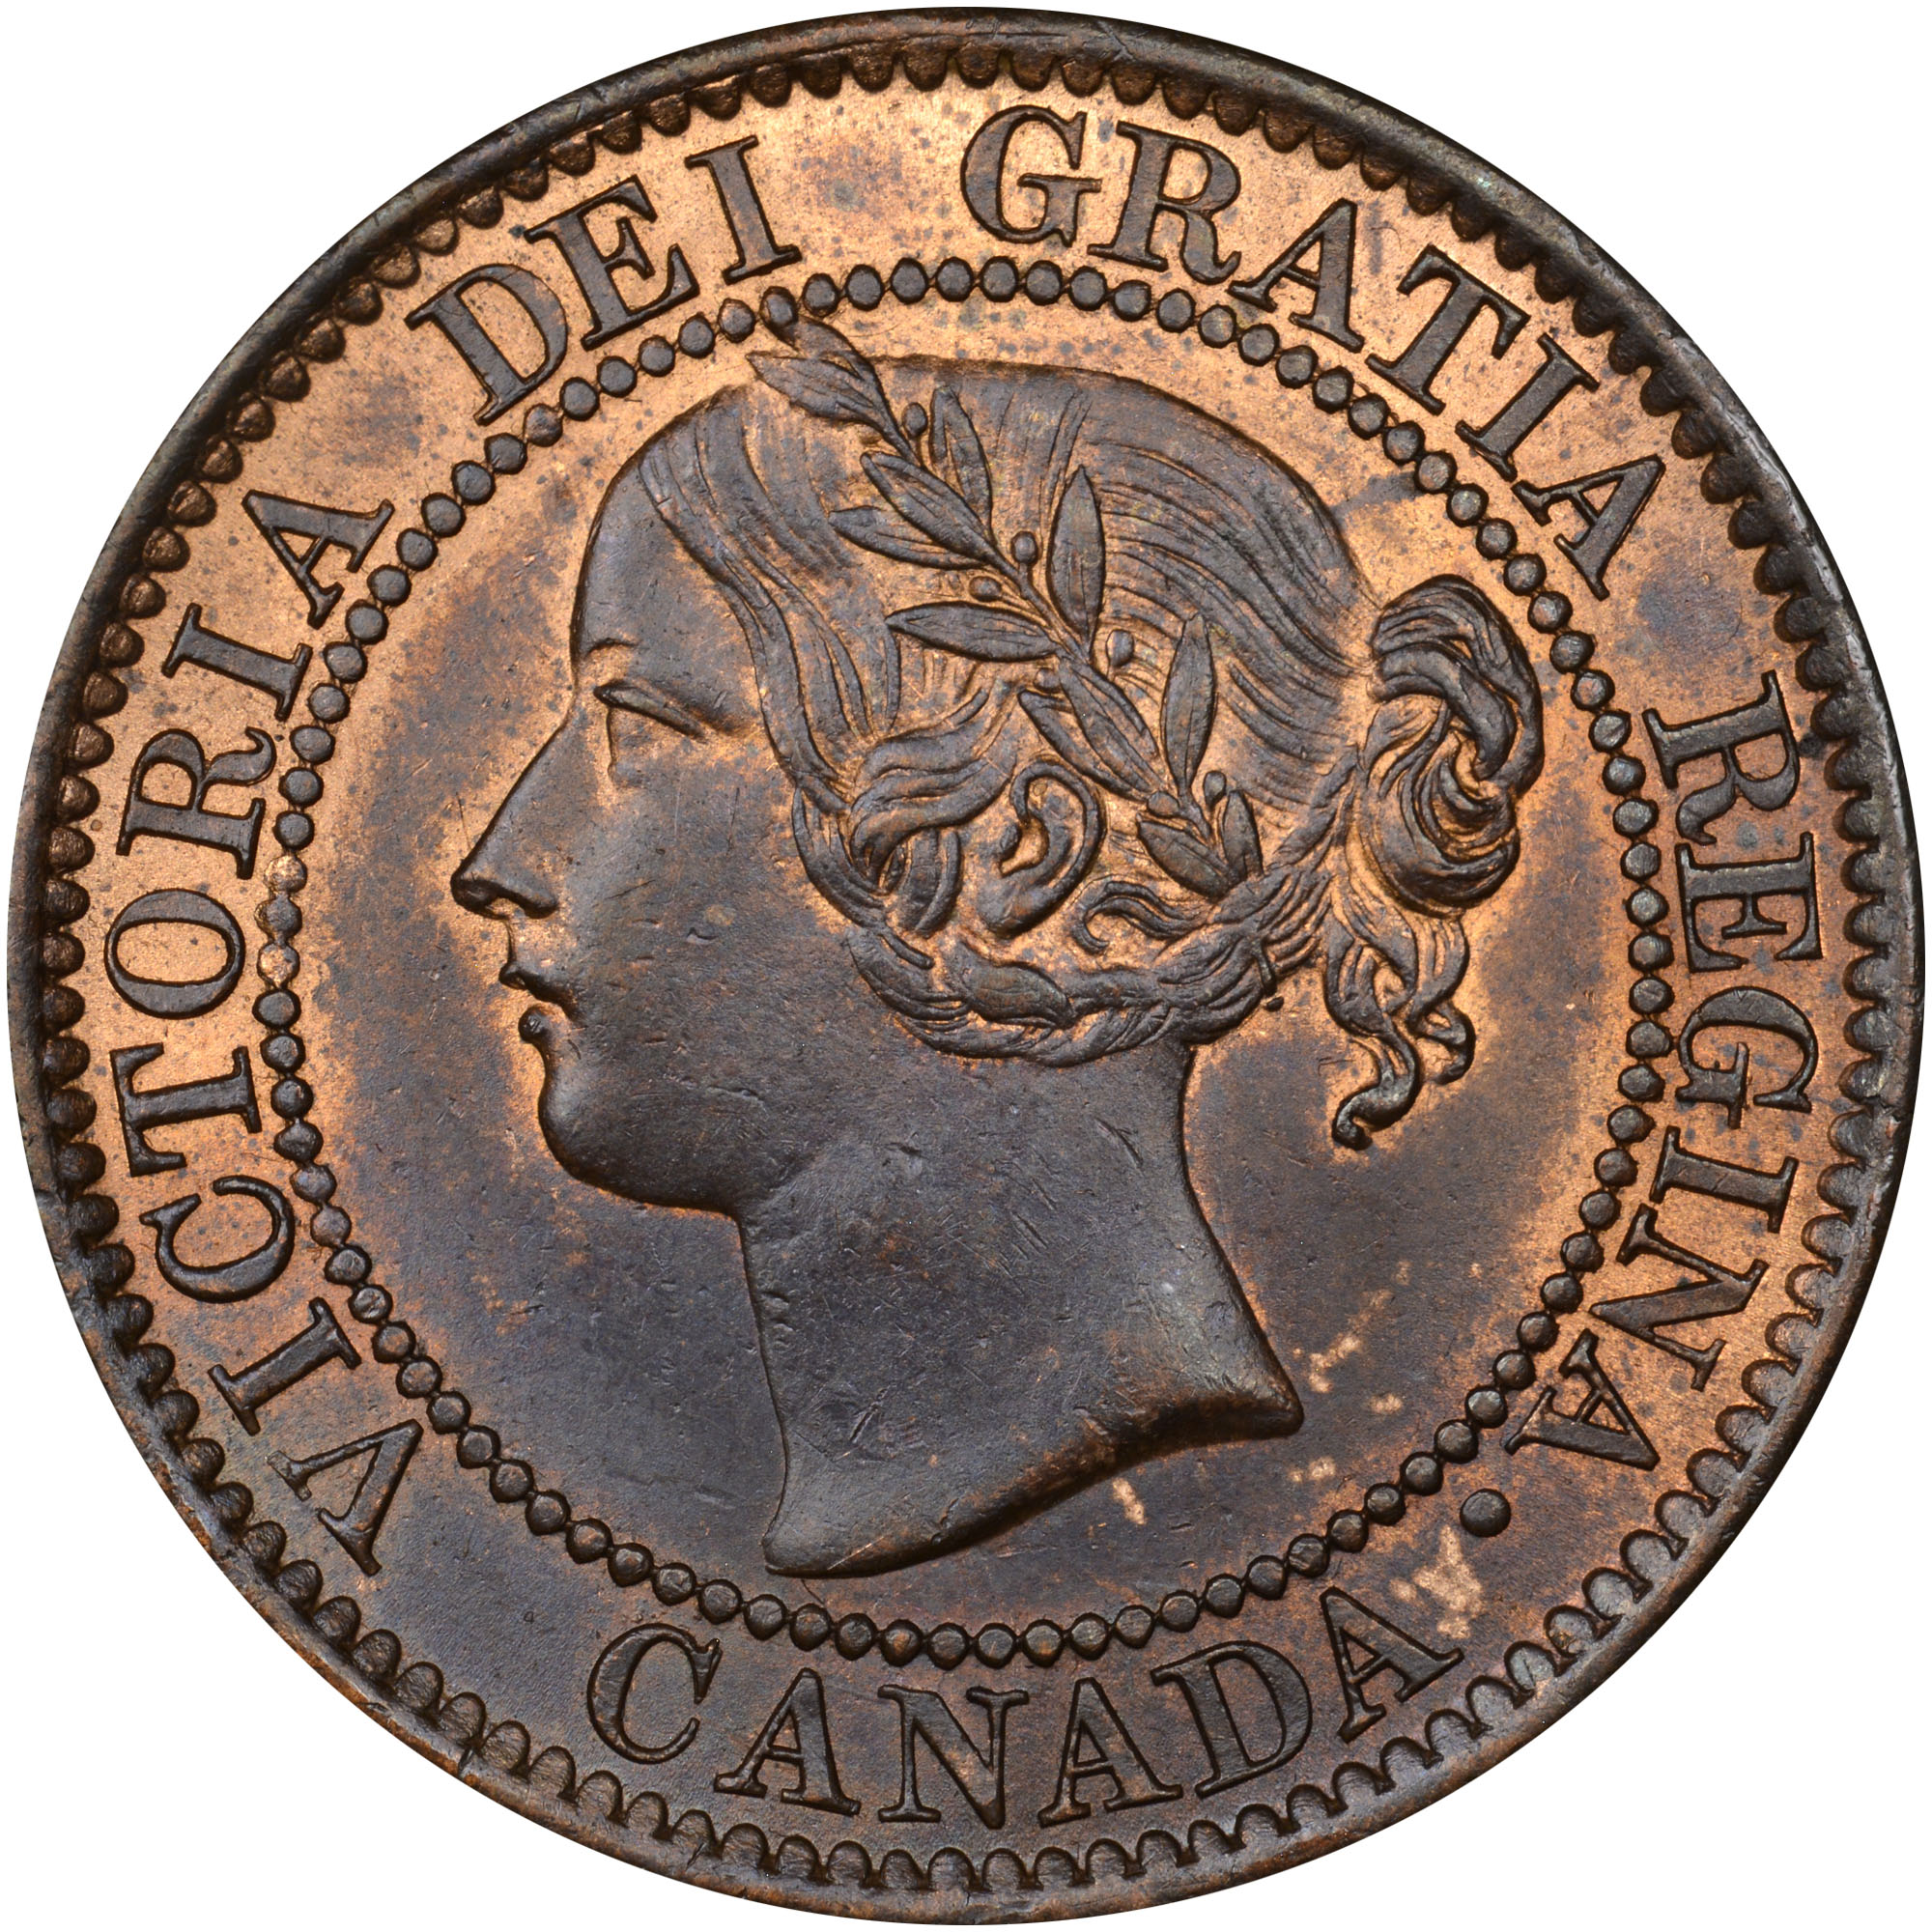 1858-1859/8 Canada Cent obverse